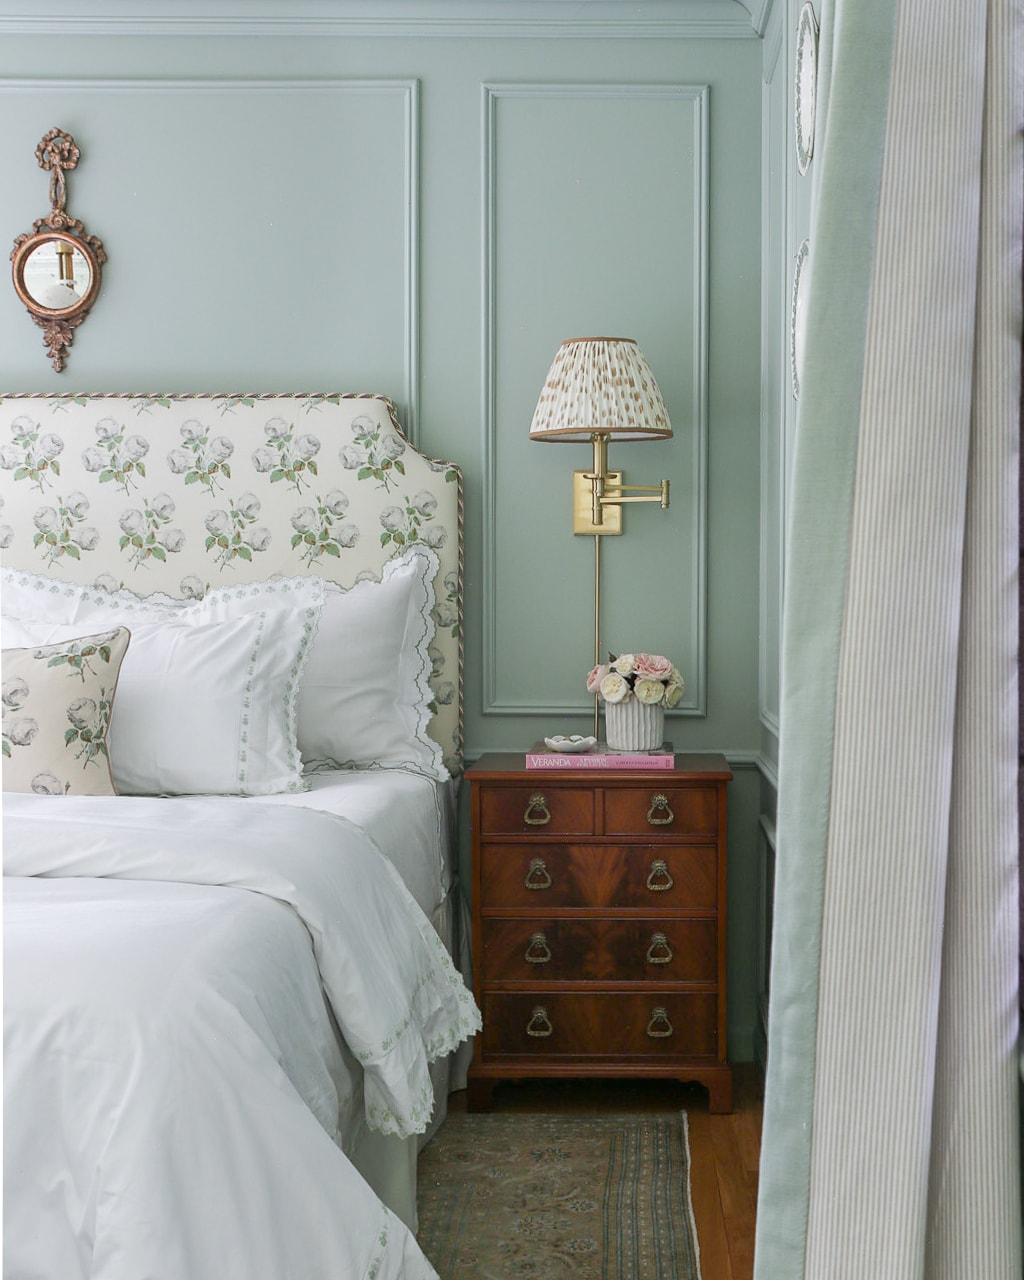 ticking-stripe-fabric-curtains-pillows-traditional-style